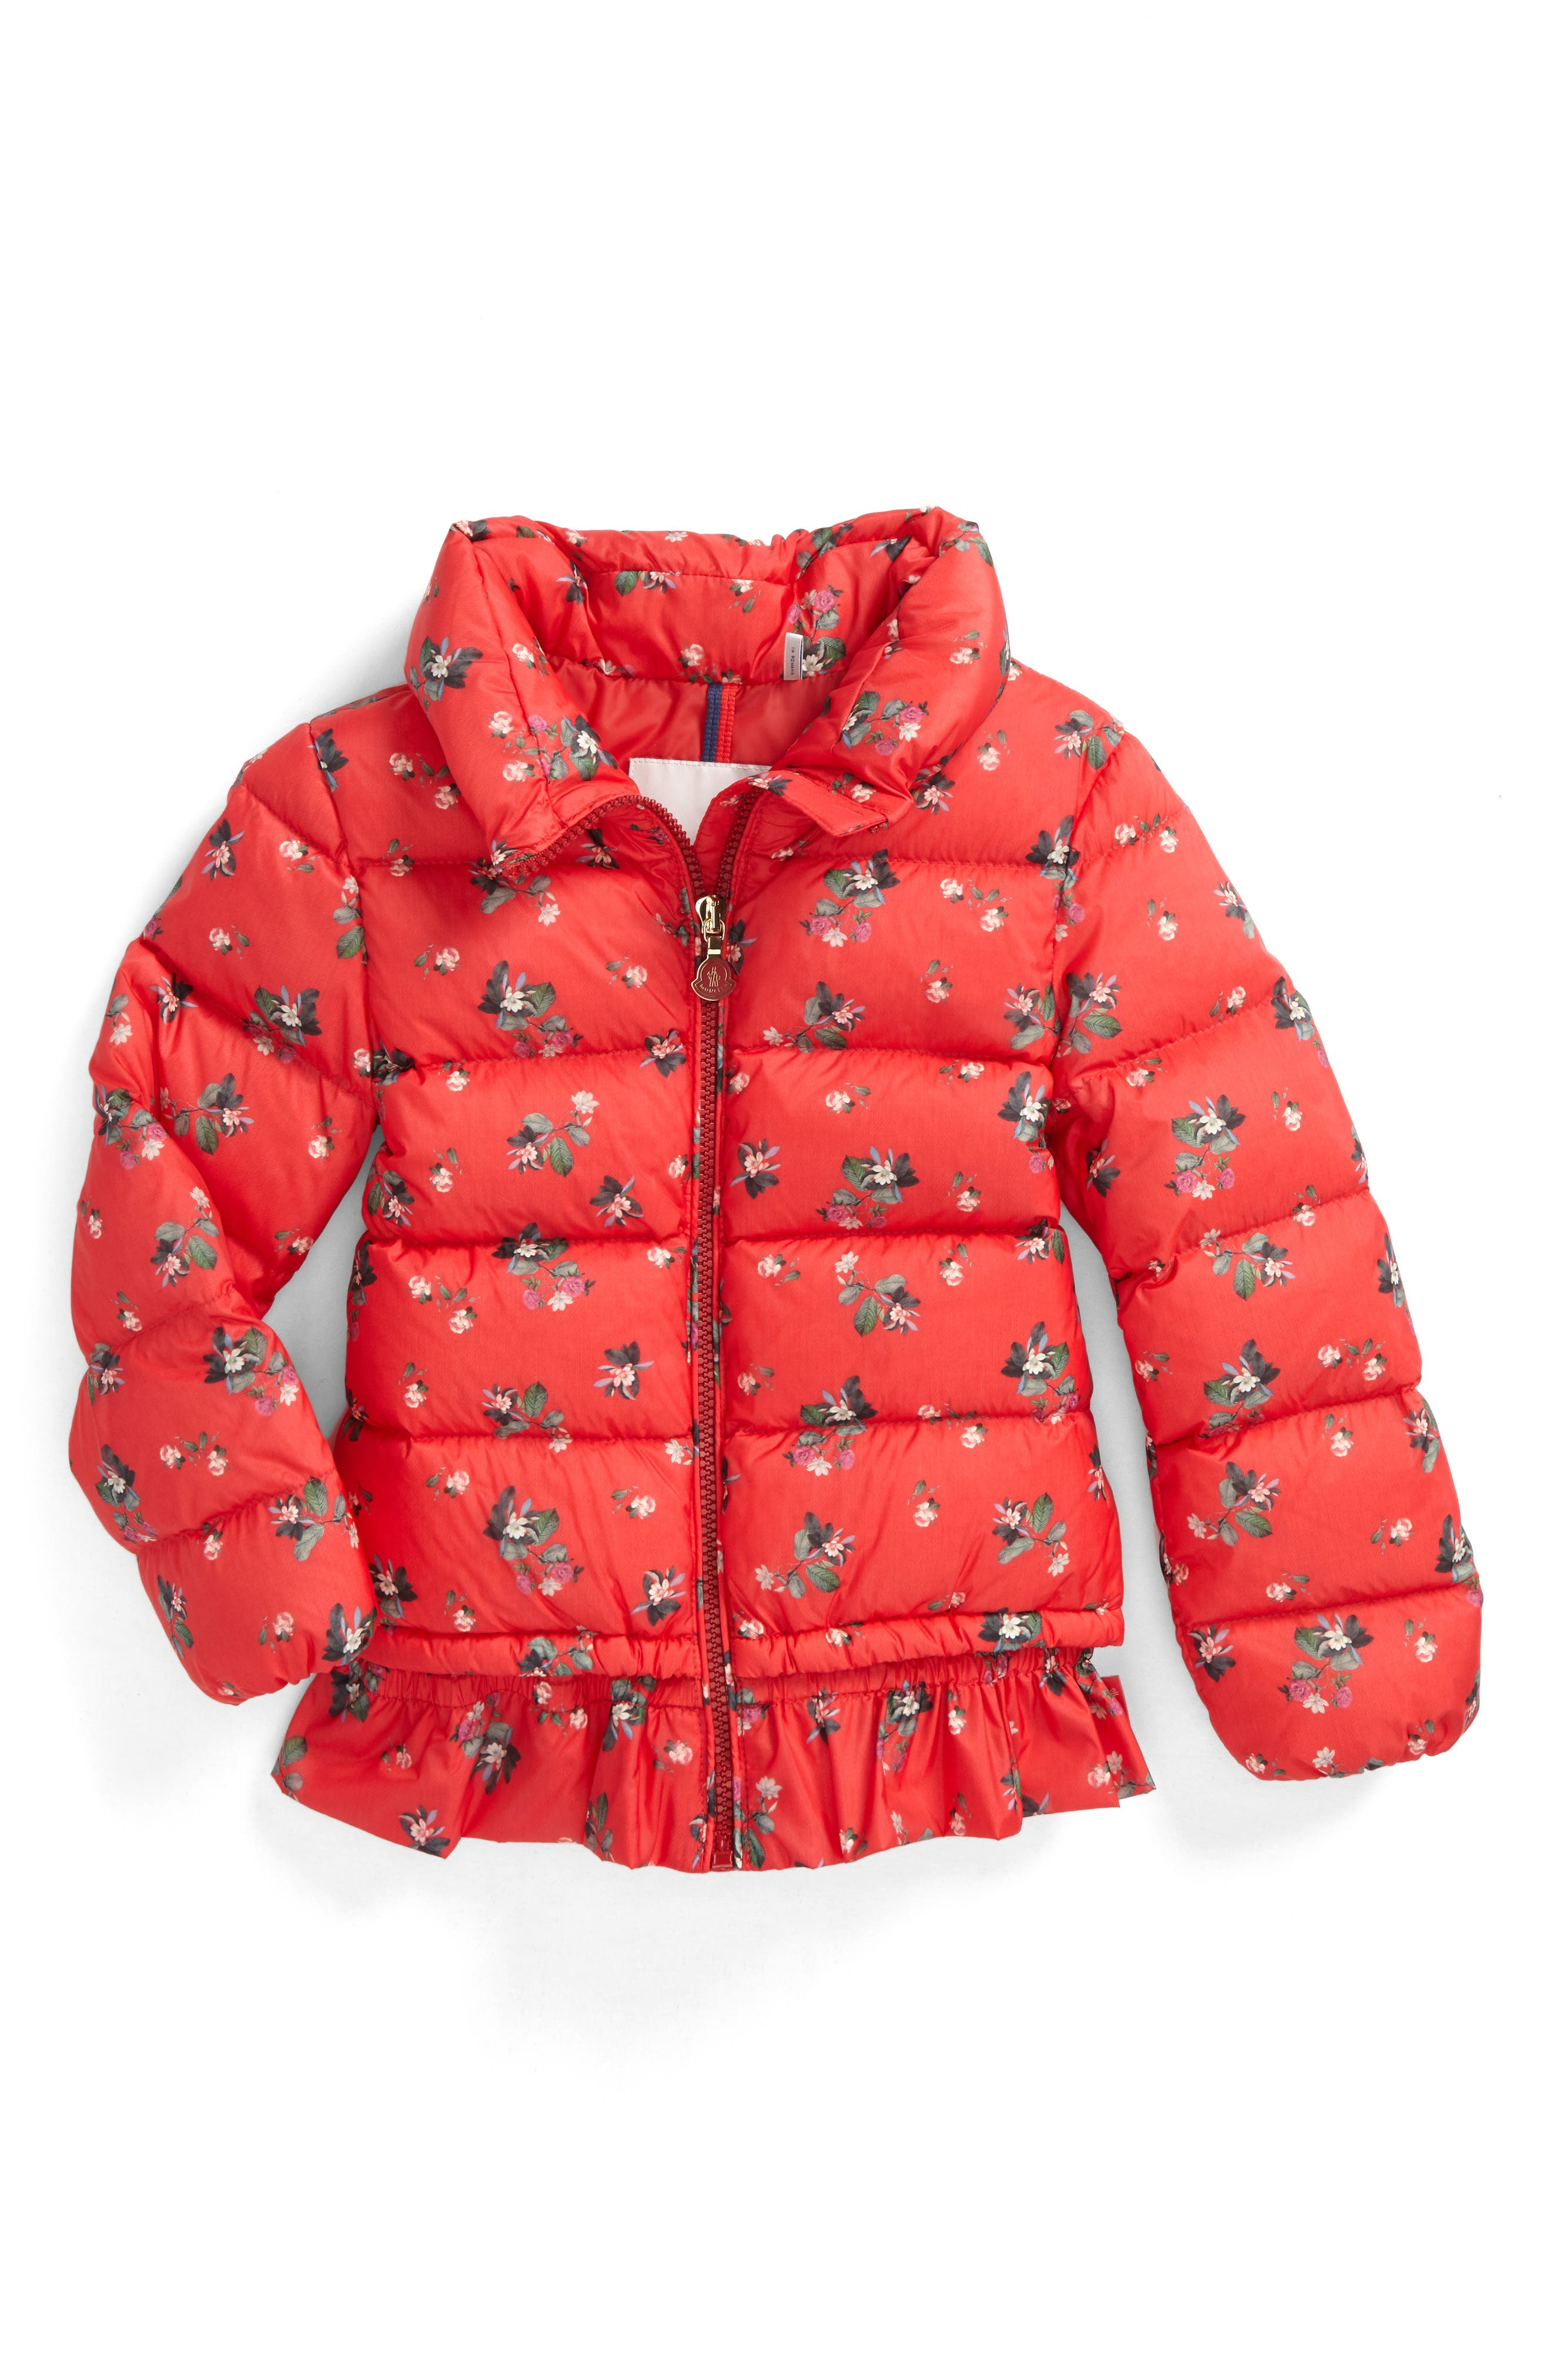 Main Image - Moncler Anette Water-Resistant Down Jacket (Little Girls & Big Girls)